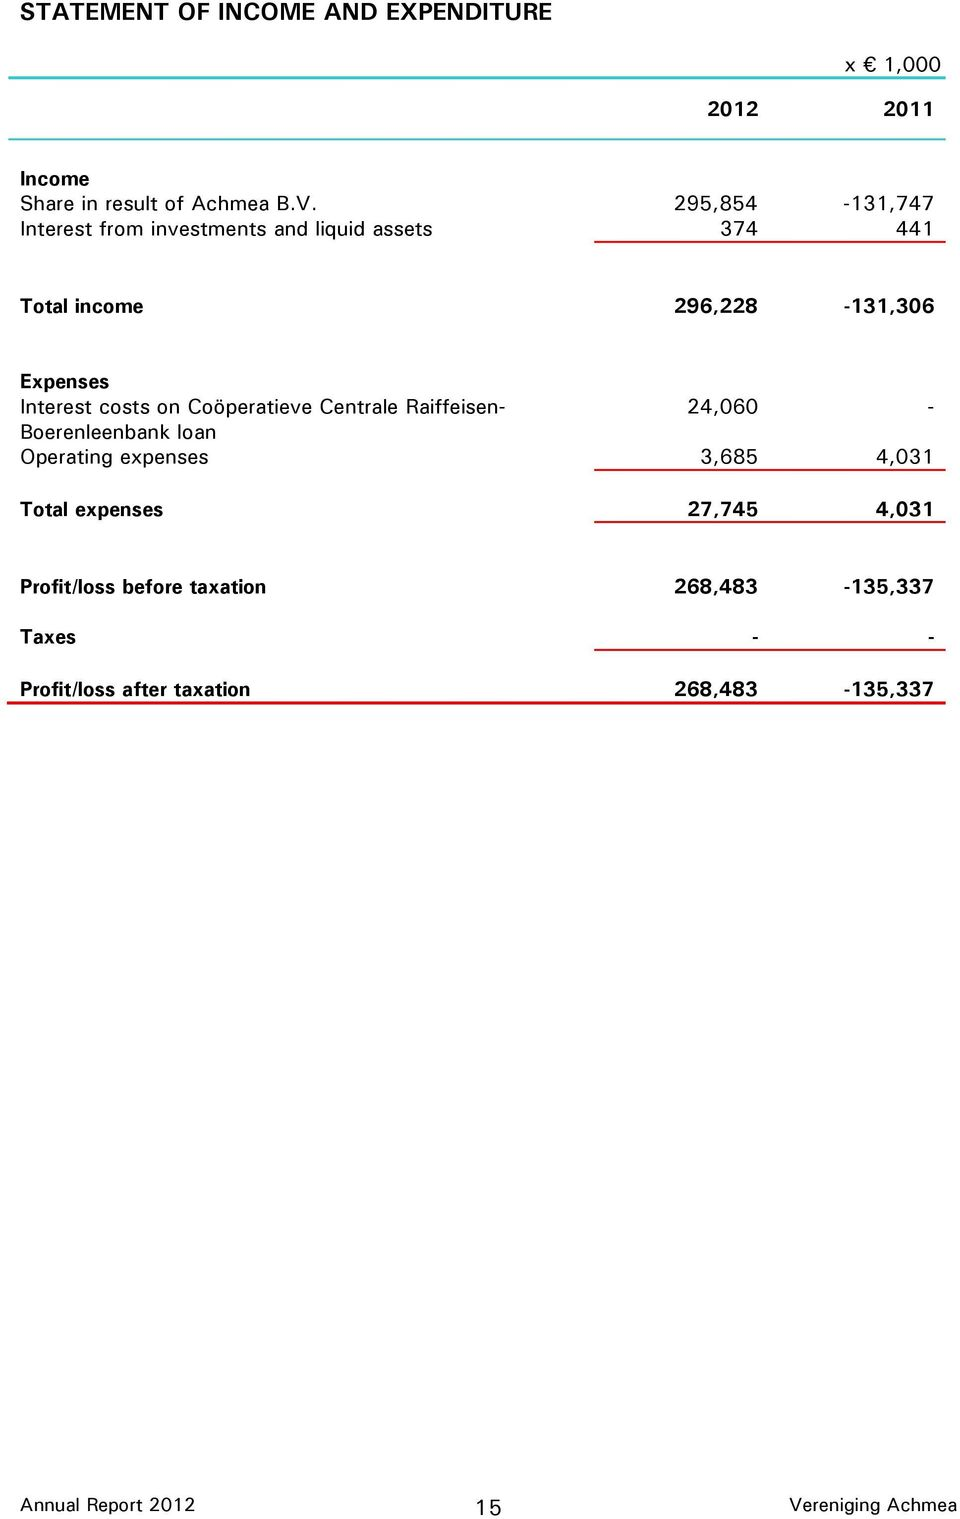 Interest costs on Co peratieve Centrale Raiffeisen- 24,060 - Boerenleenbank loan Operating expenses 3,685